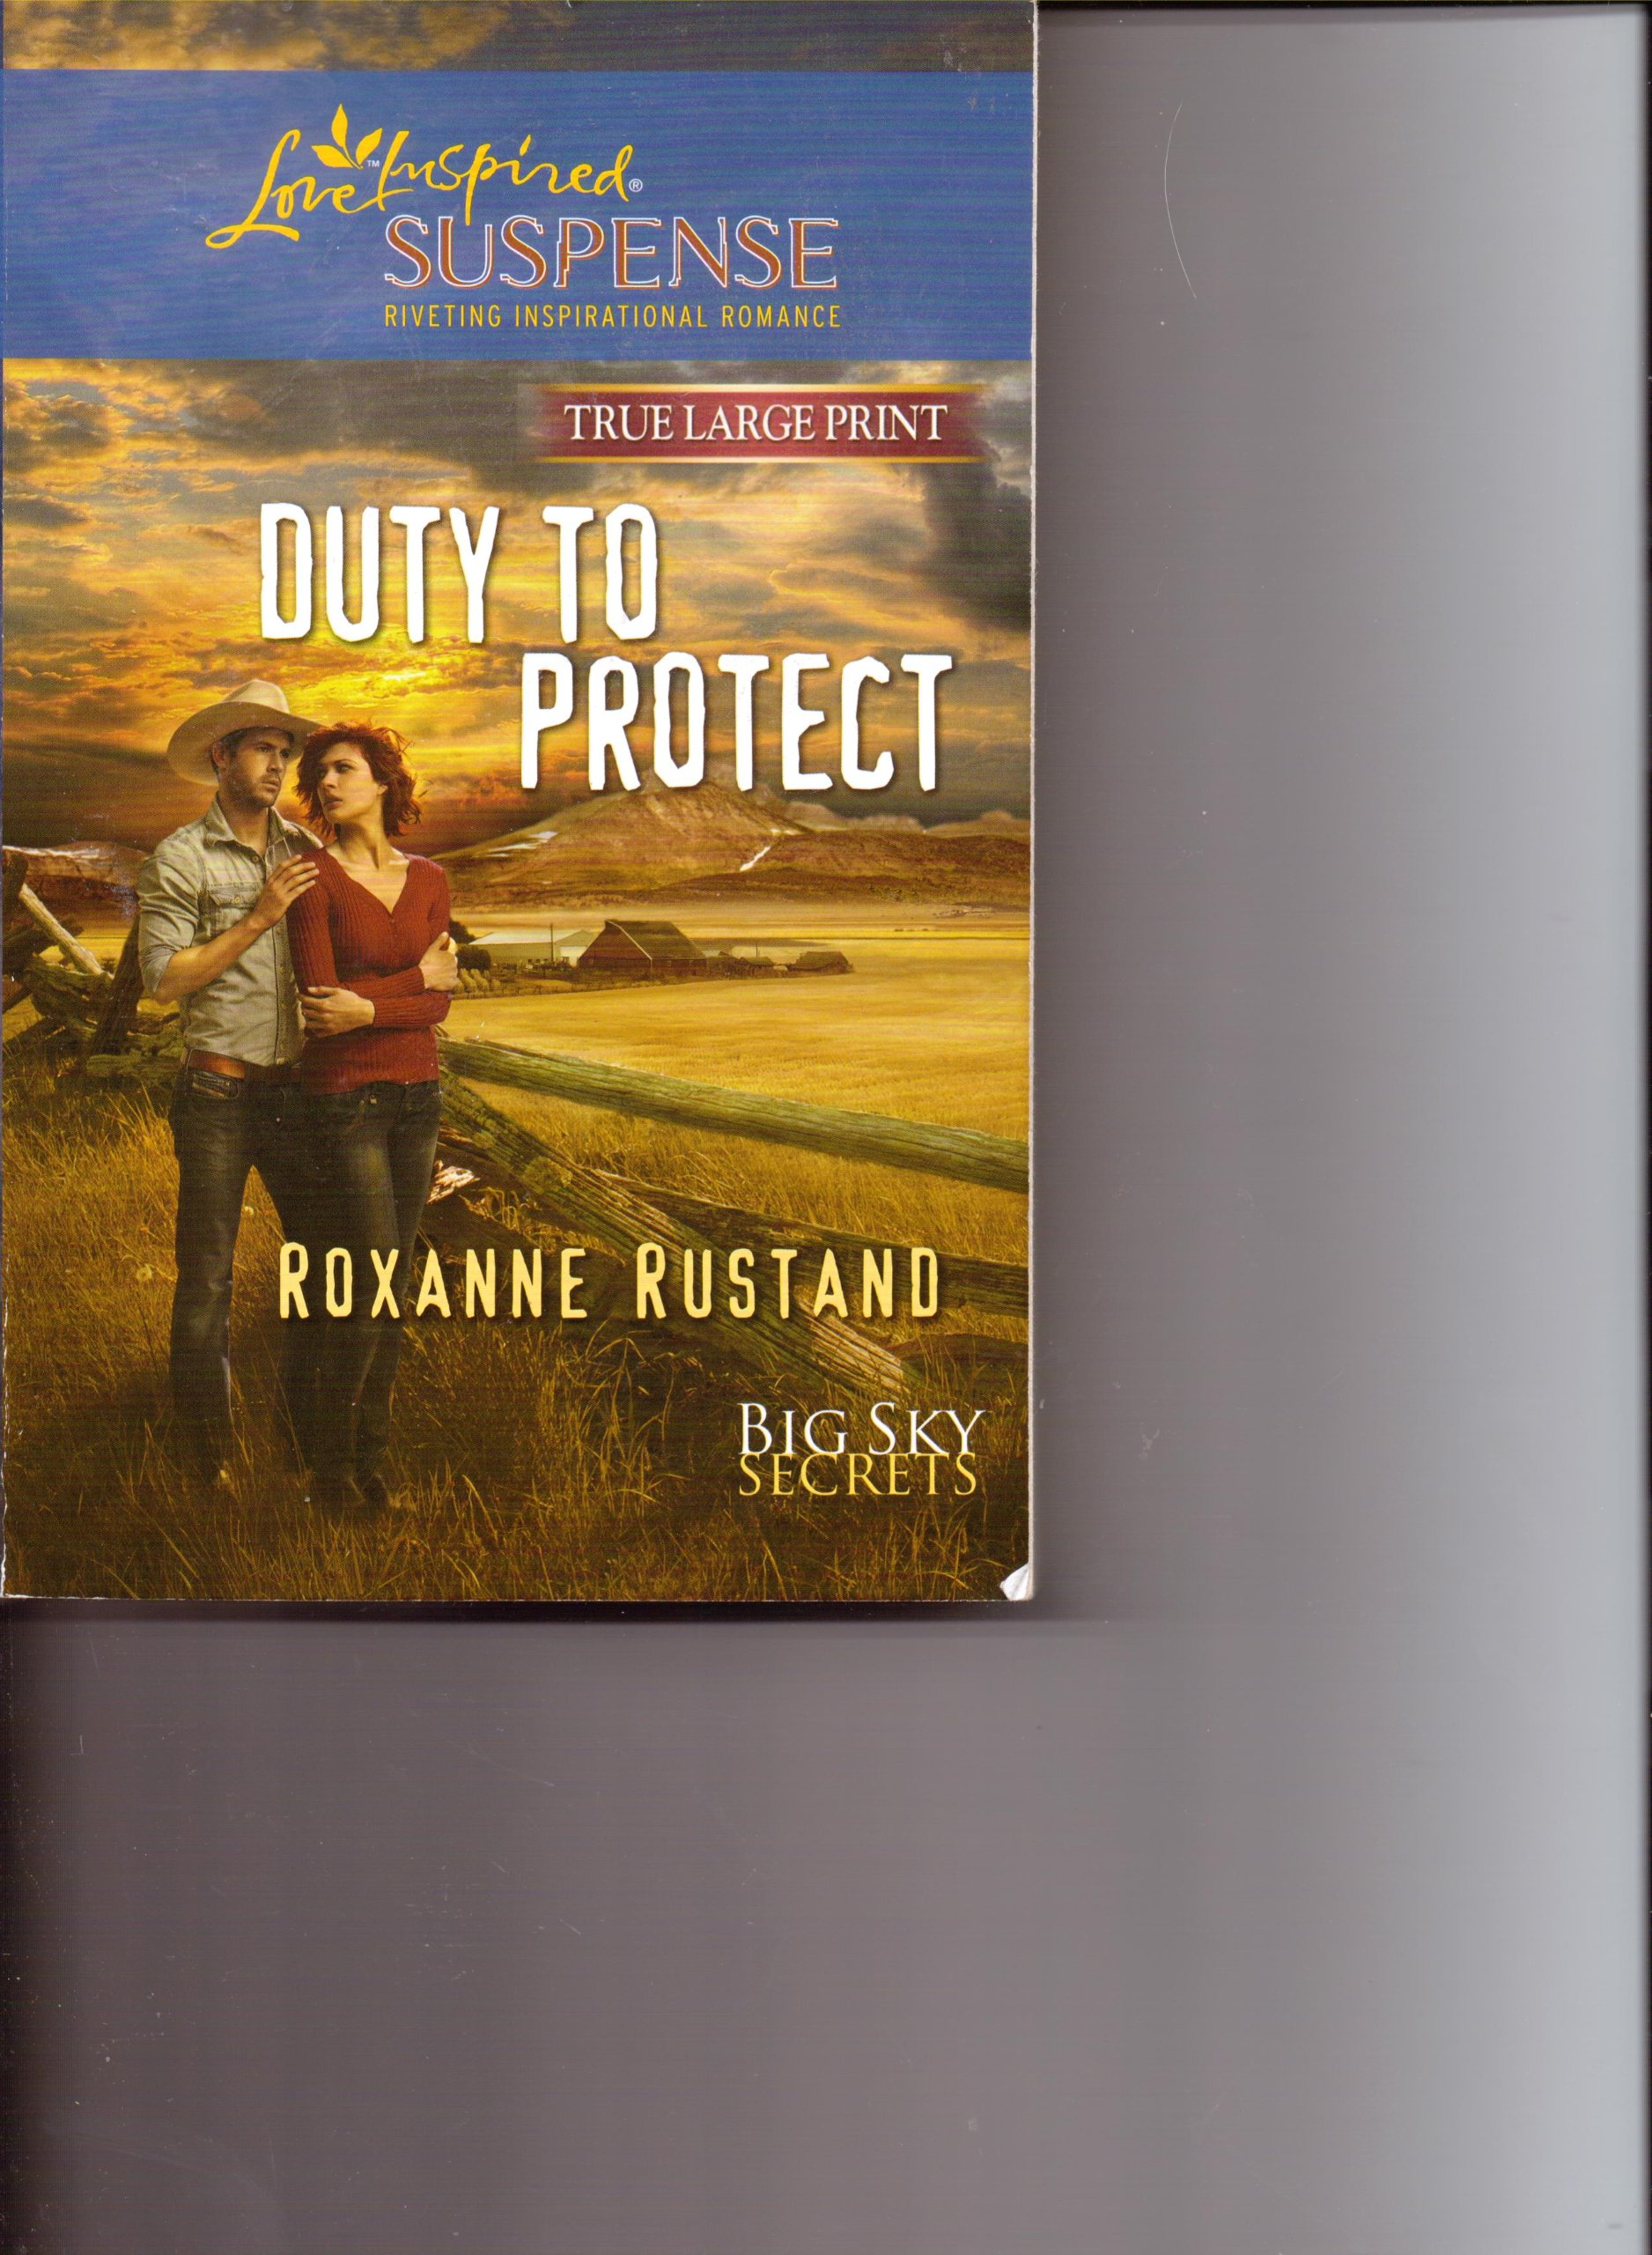 Read Online Duty to Protect, Big Sky Secrets (Love Inspired Suspense True Large Print) ebook